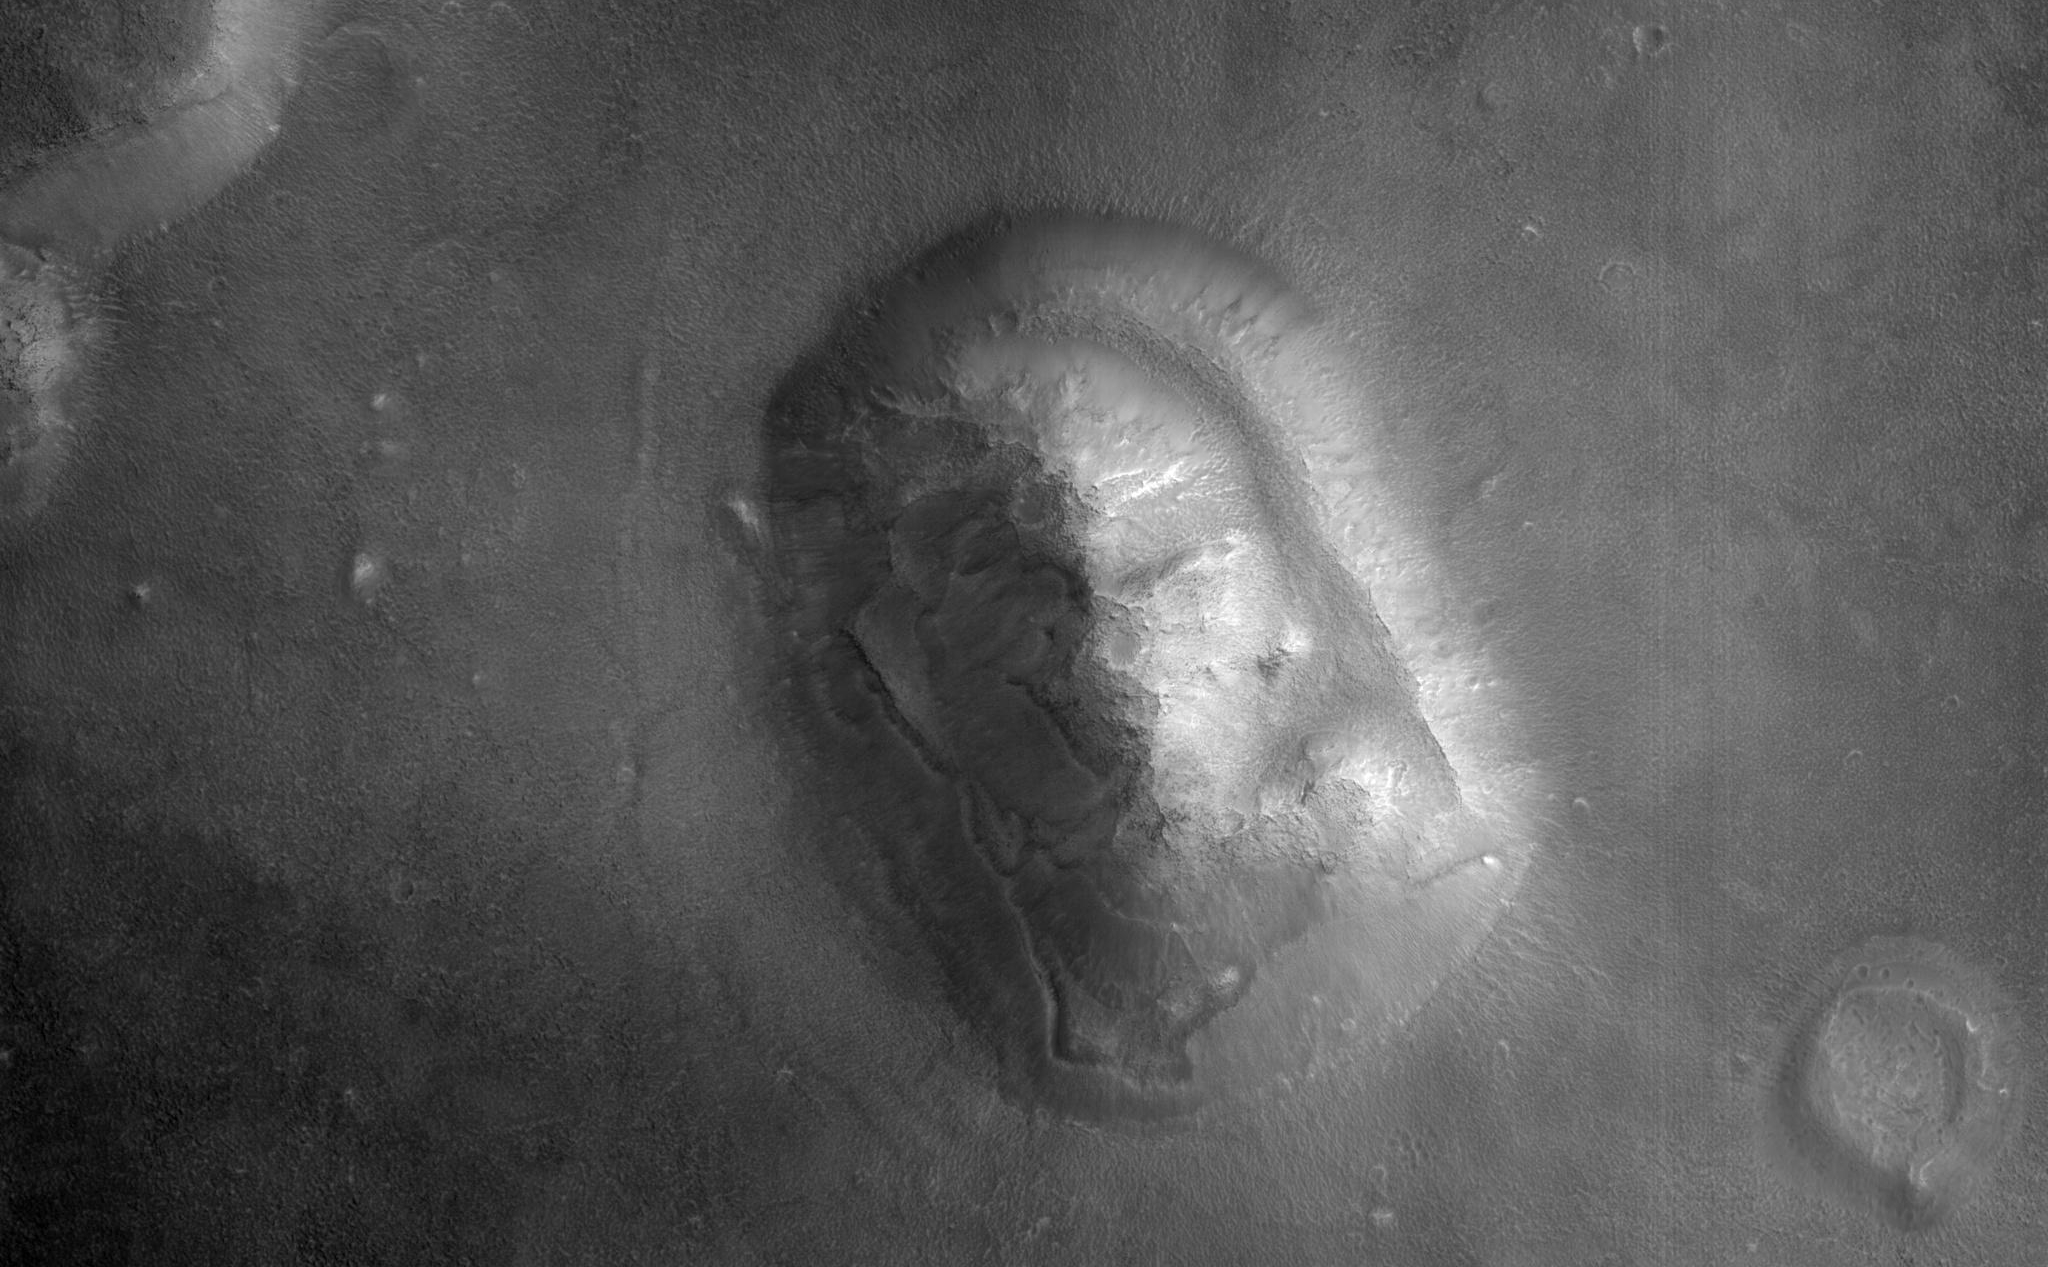 HiRISE captured this image of an eroded mesa made famous by its similarity to a human face in a Viking Orbiter image with much lower spatial resolution and a different lighting geometry.